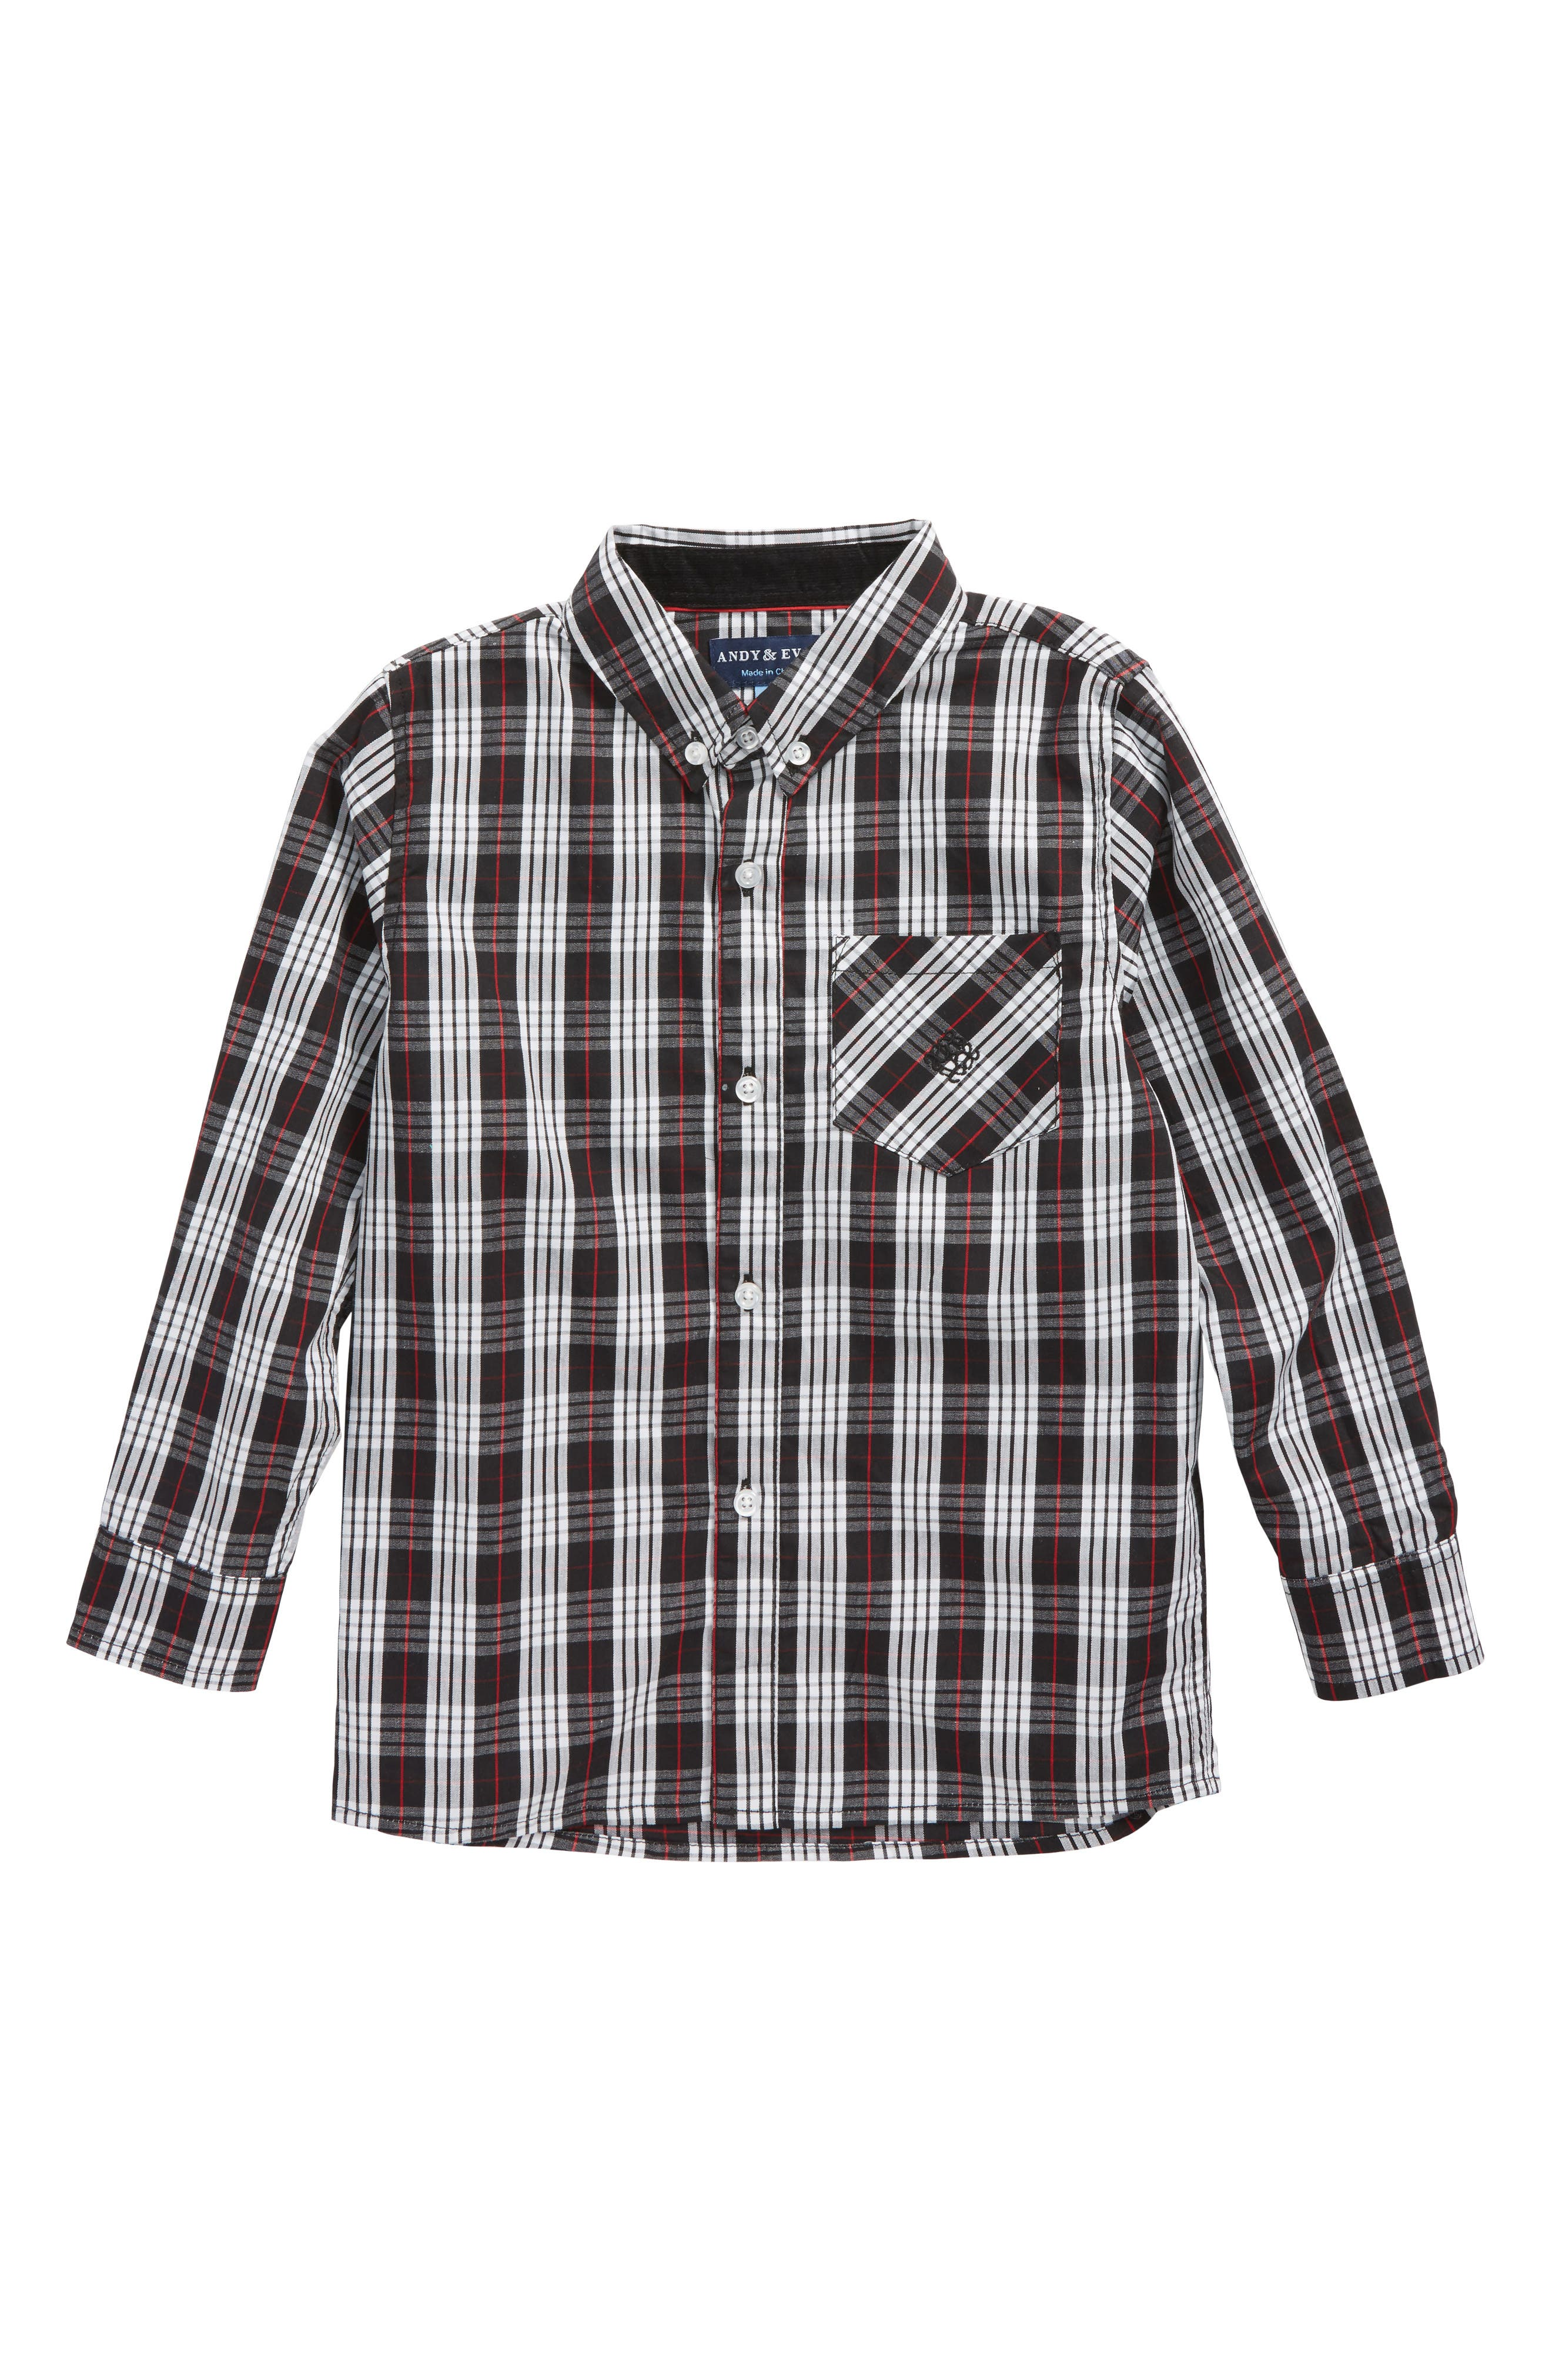 Plaid Woven Shirt,                             Main thumbnail 1, color,                             002